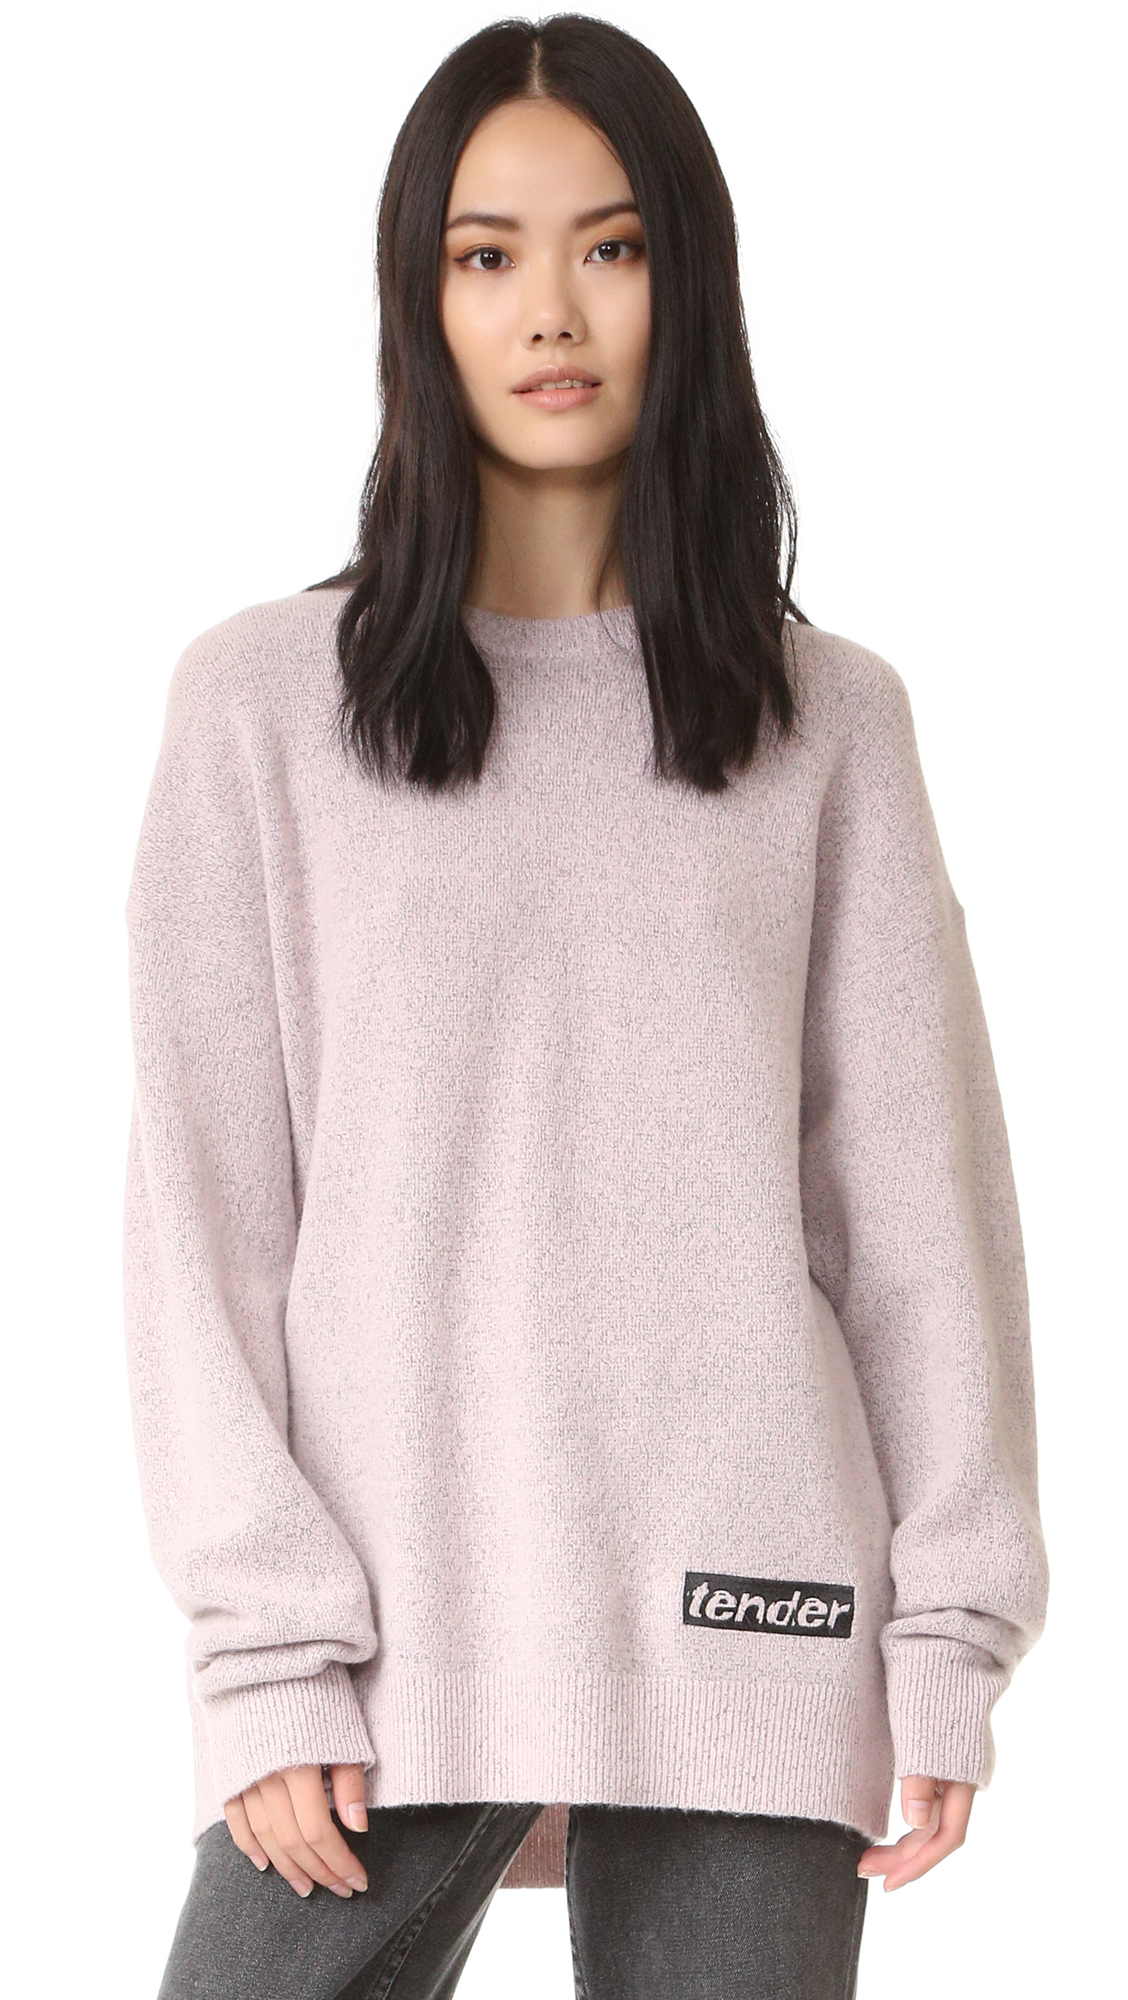 This boxy Alexander Wang sweater is detailed with 'tender' lettering at the embroidered patch. Crew neckline. Ribbed edges and long sleeves. Fabric: Fuzzy knit. Shell: 41% wool/32% nylon/25% alpaca/2% spandex. Trim: 38% nylon/37% wool/22% alpaca/3% spandex. Dry clean.